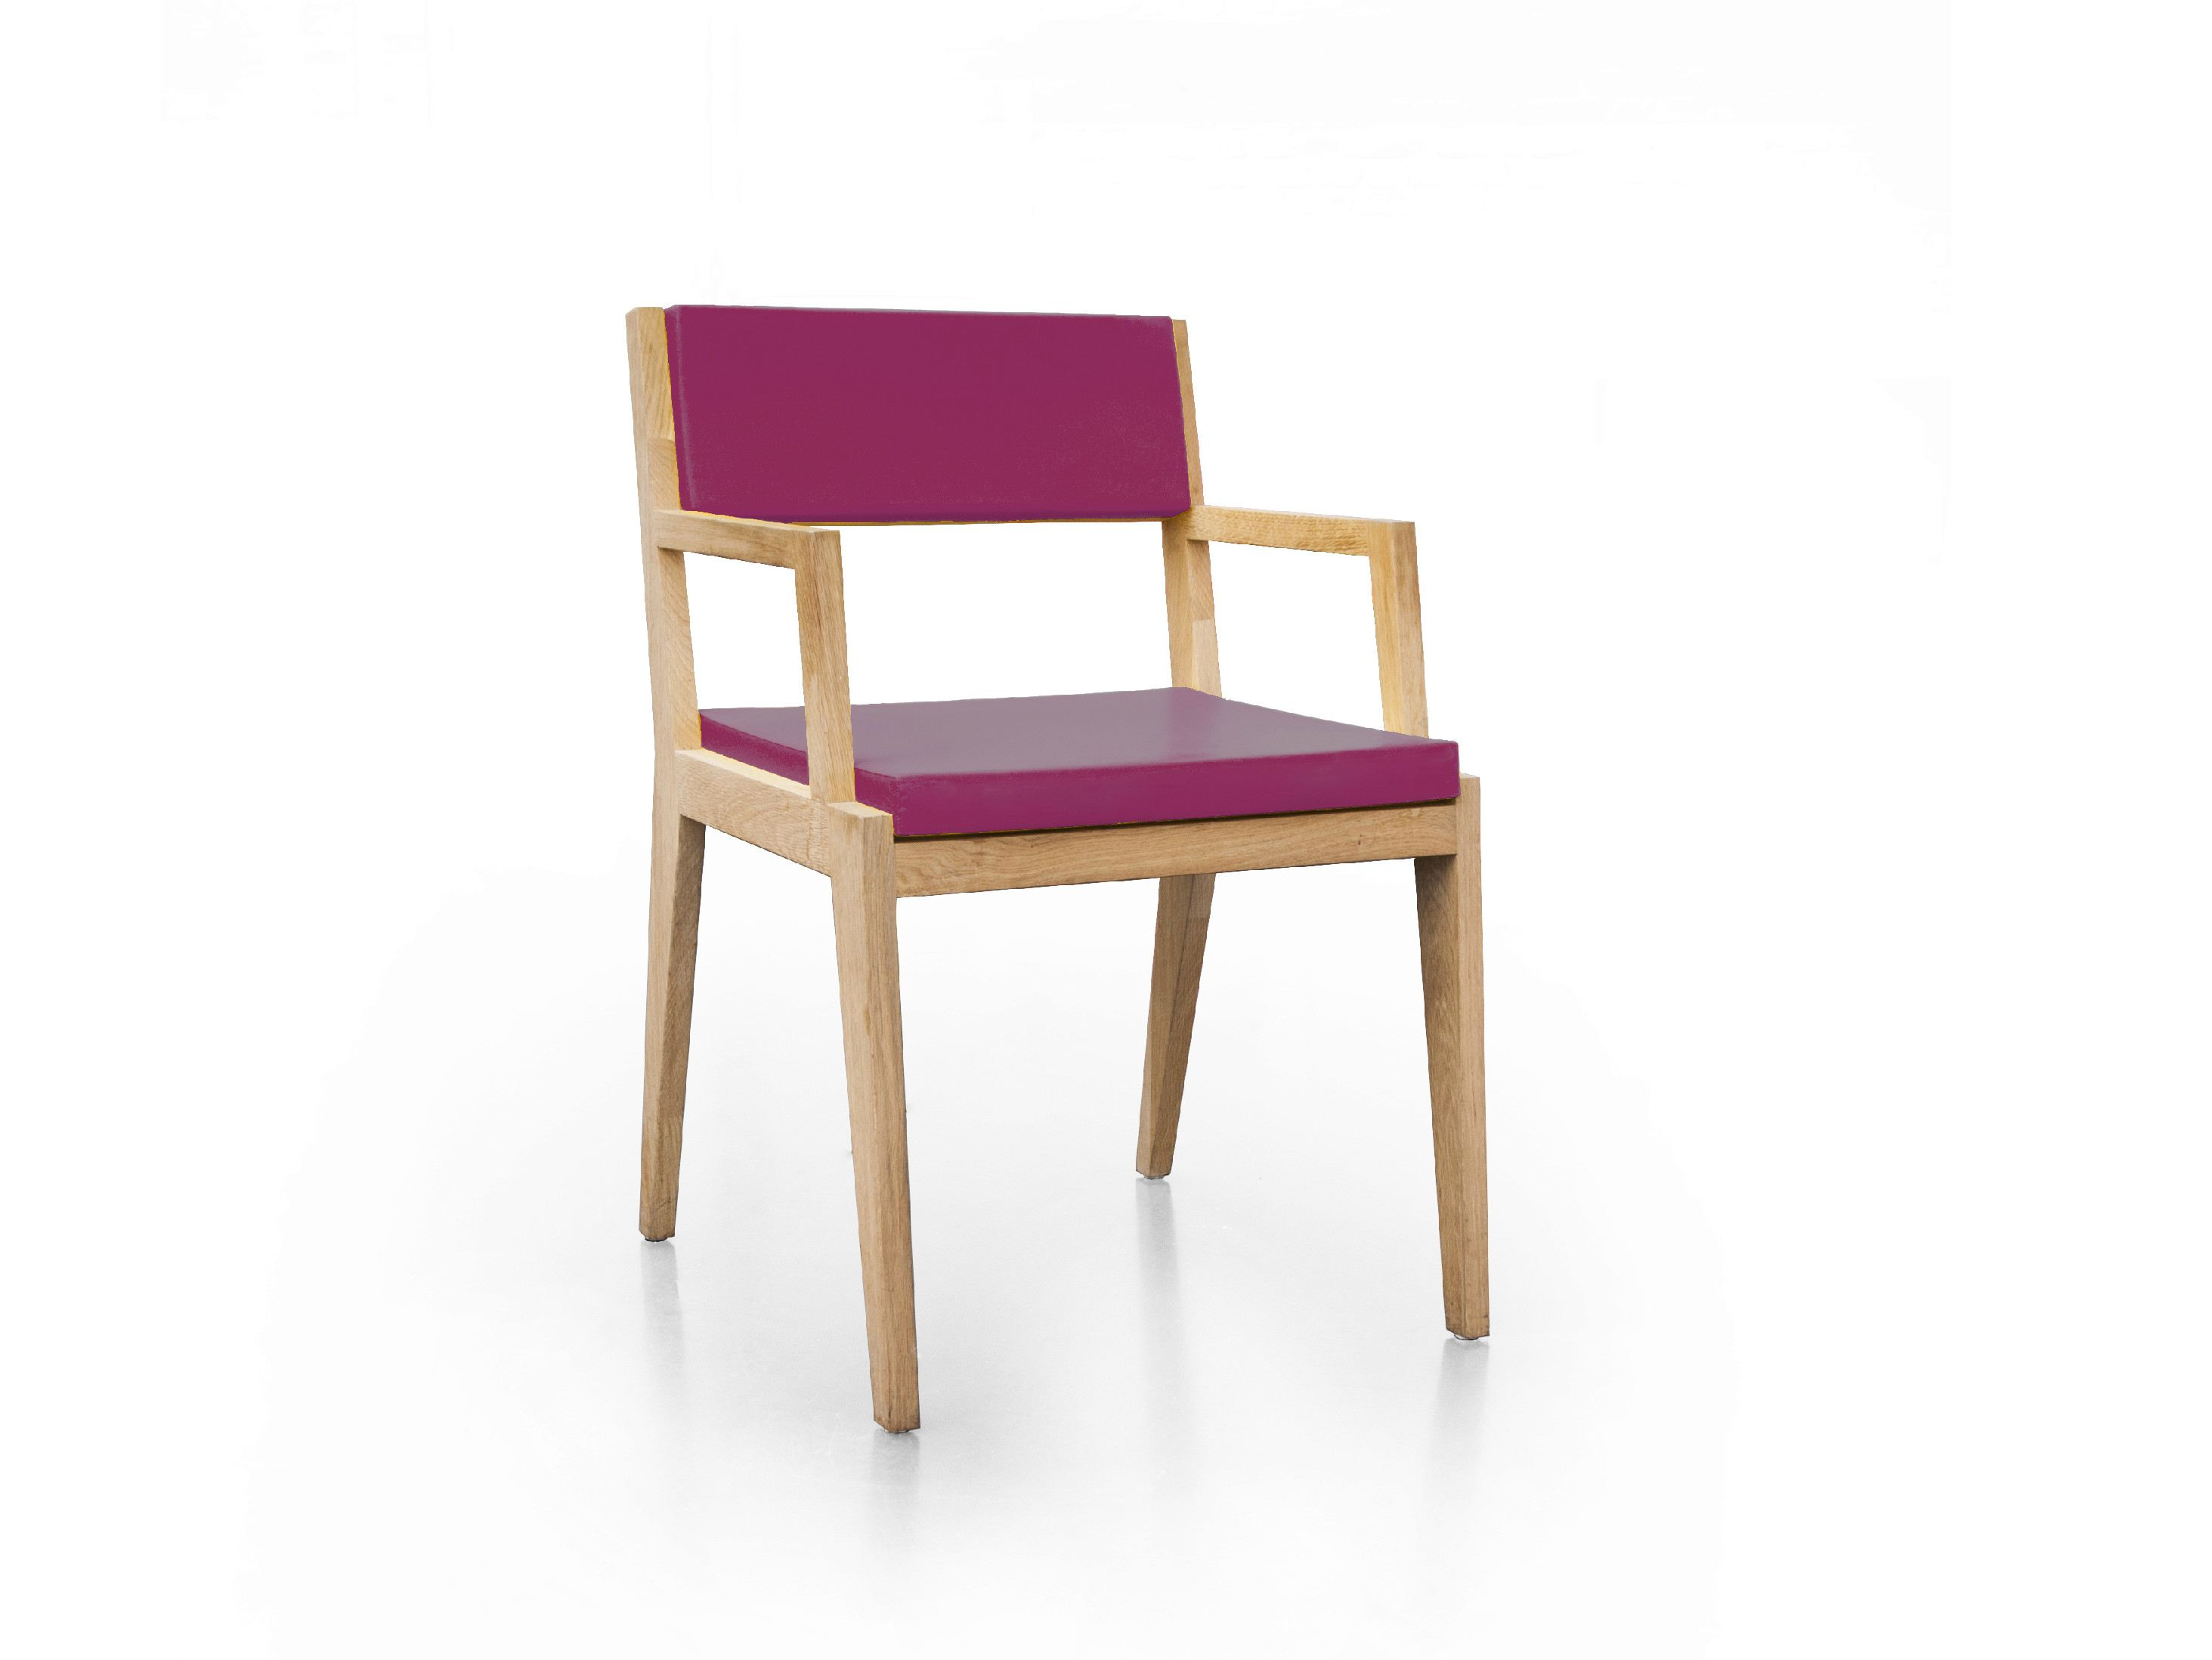 Wooden chairs with armrest - Wooden Chairs With Armrest 6